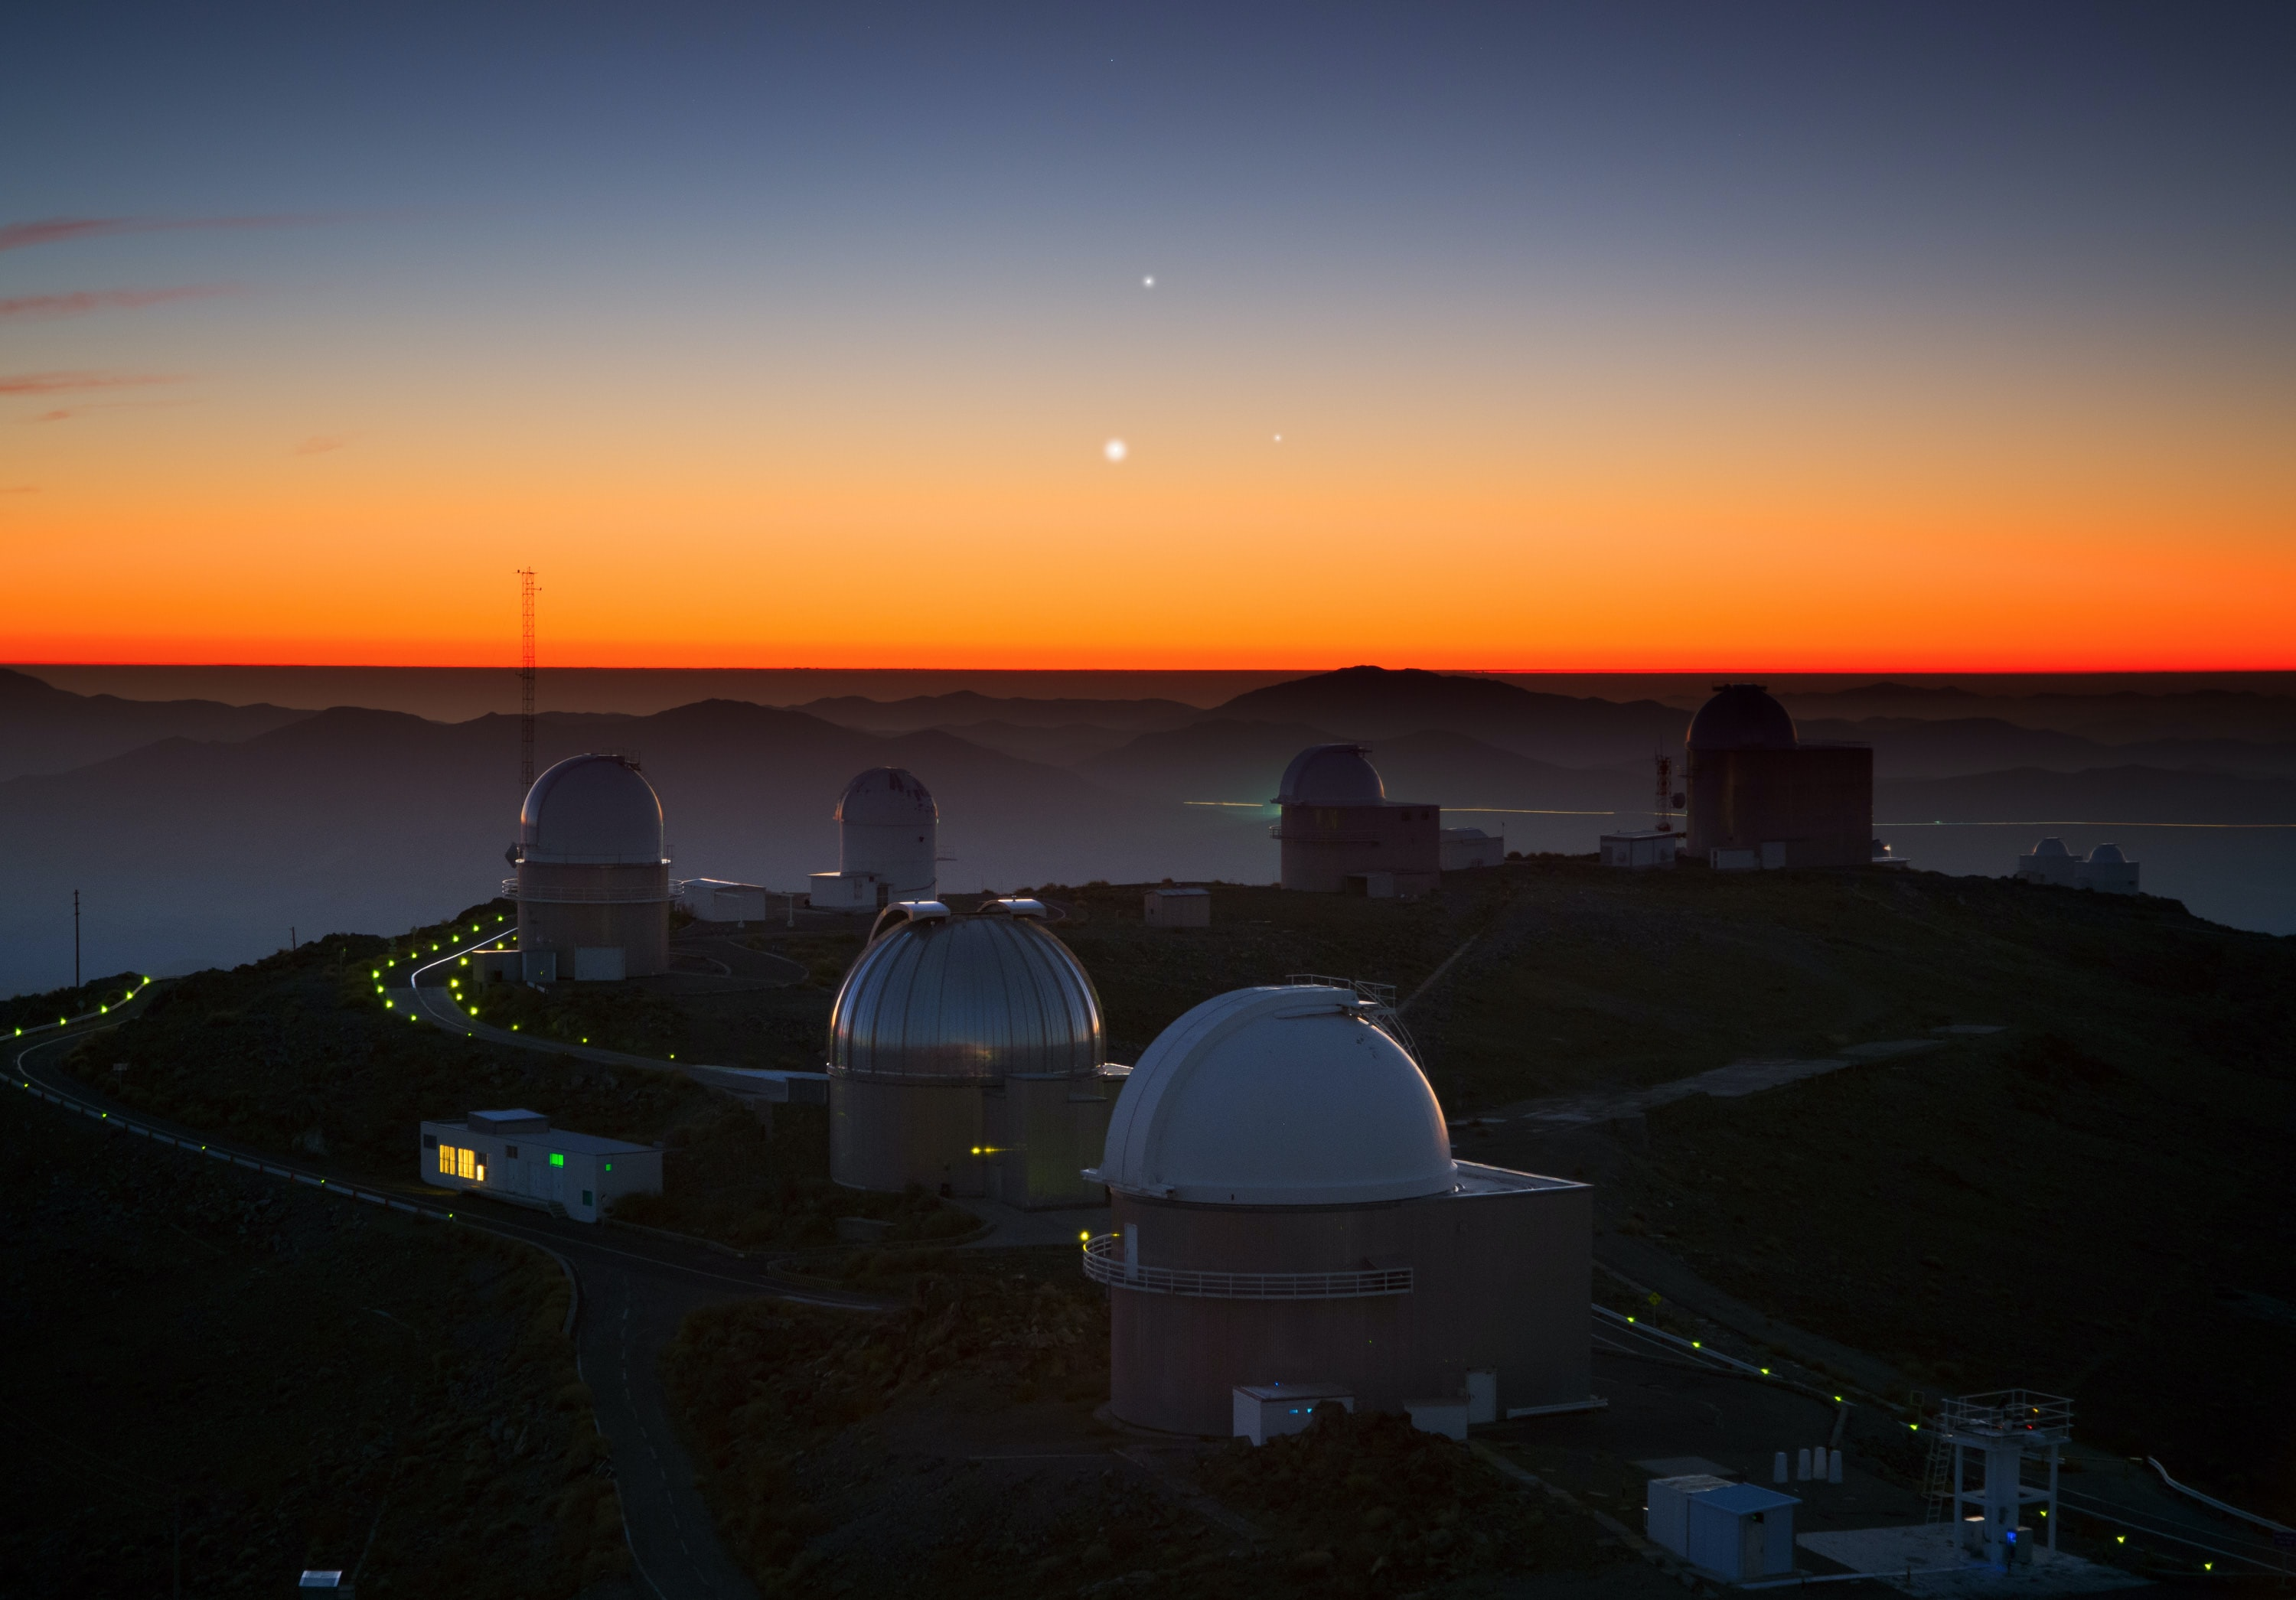 syzygy The Supermoon: What It Is, Why It Is (And Maybe A New Complication, Why Not?) The Supermoon: What It Is, Why It Is (And Maybe A New Complication, Why Not?) Three Planets Dance Over La Silla